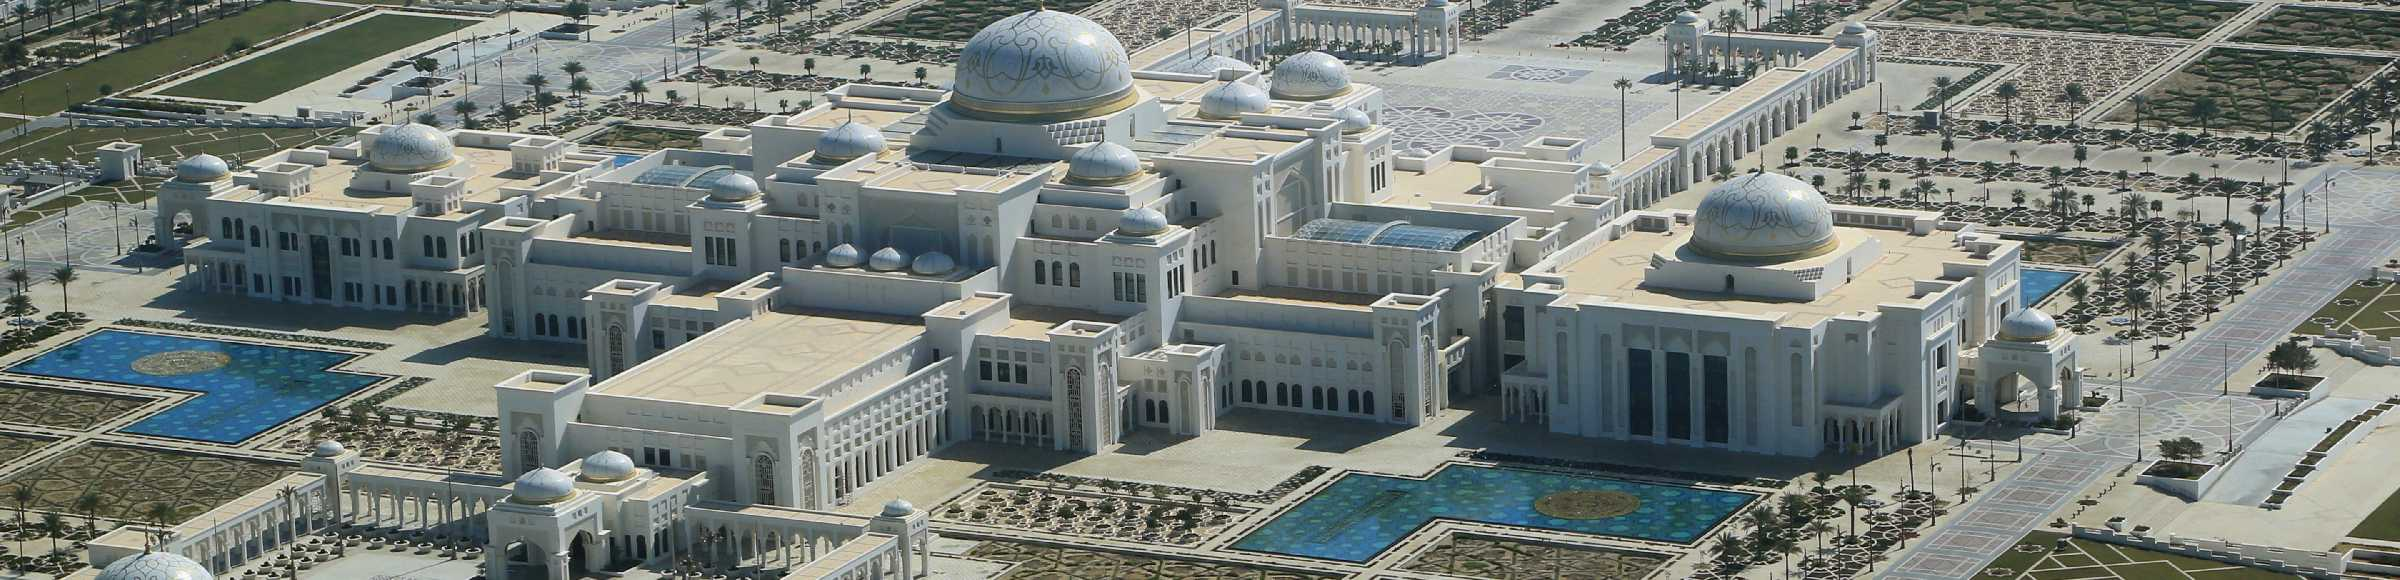 UAE Presidential Palace on the peninsula Ras al Akhdar in the Persian Gulf in Abu Dhabi in United Arab Emirates